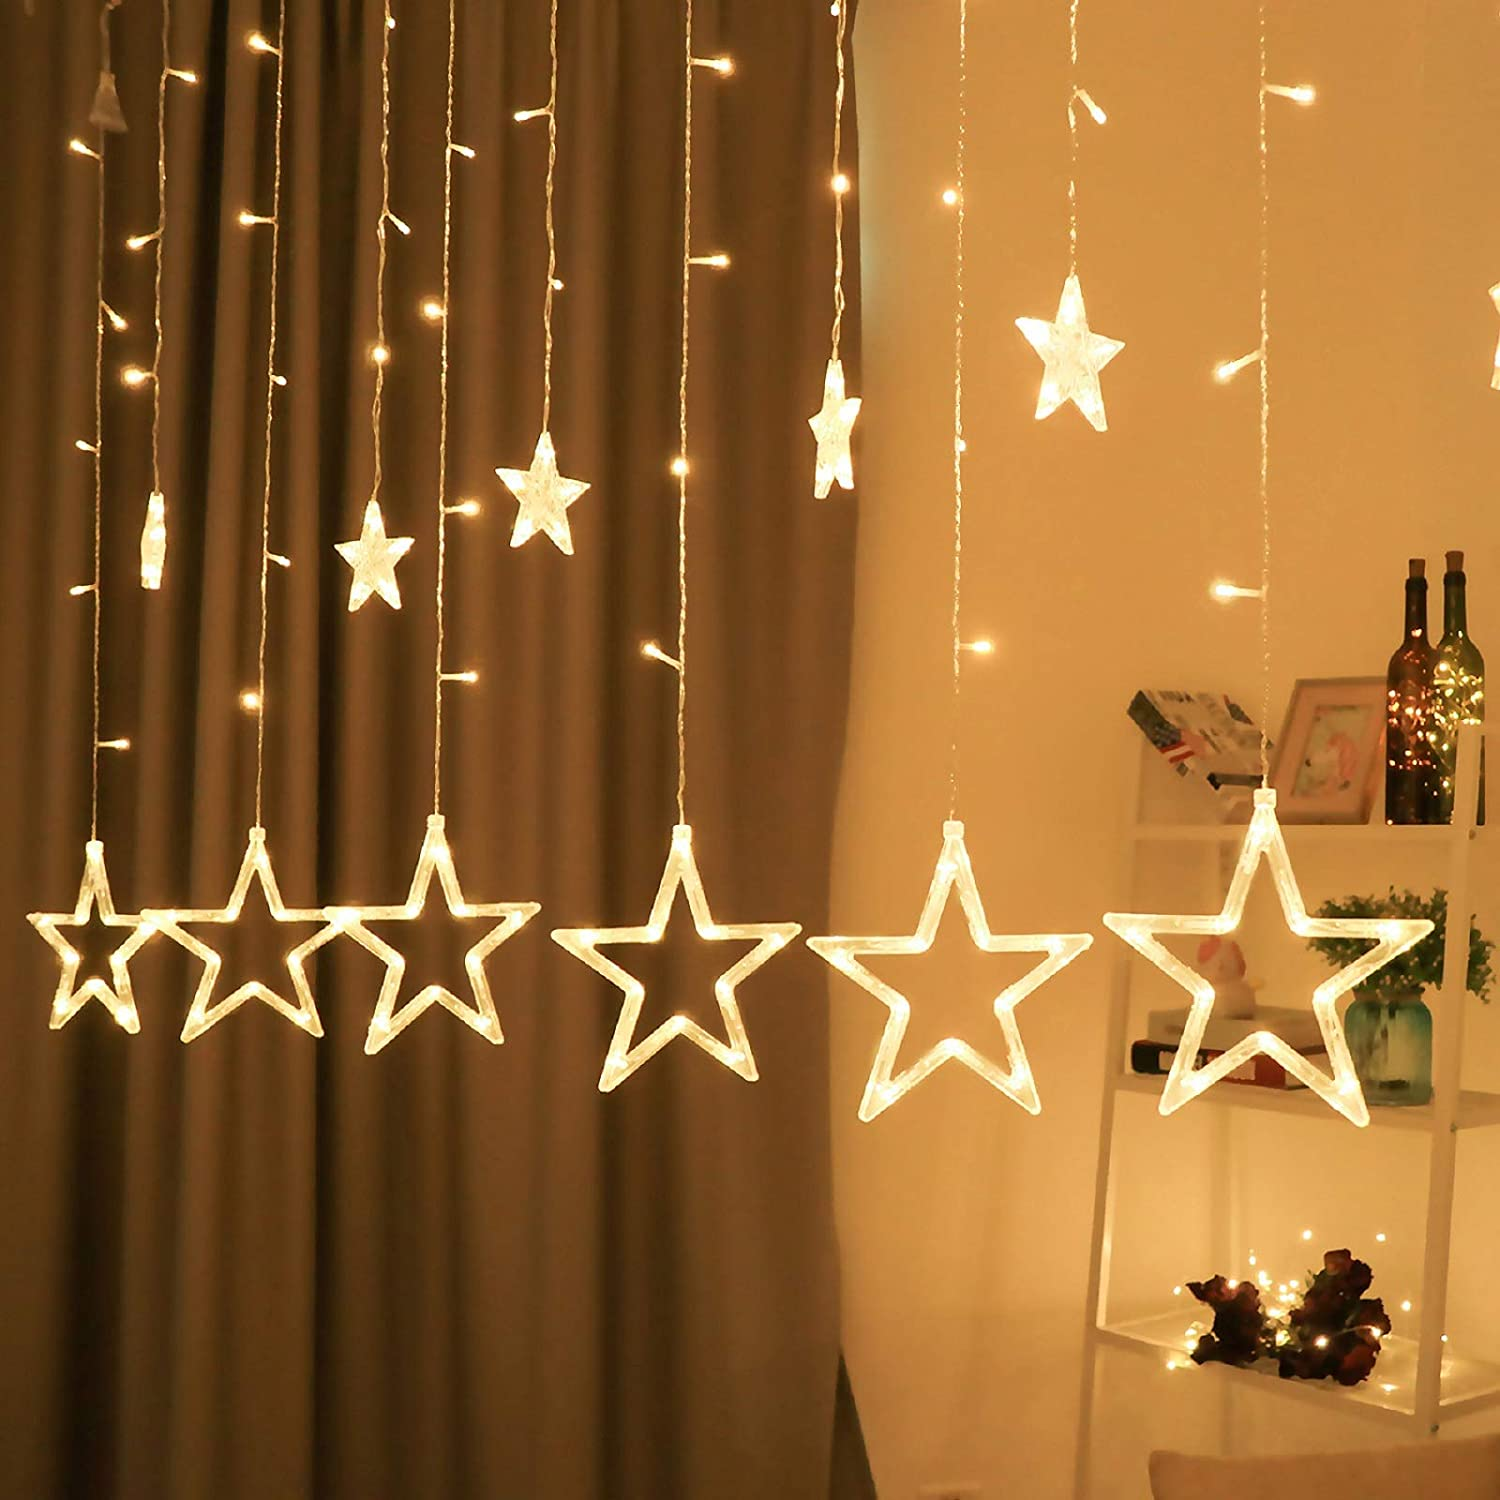 Amazon Com Bhclight 12 Stars 138 Led Star Lights Star String Lights For Bedroom With 8 Lighting Modes Waterproof Fairy Lights For Bedroom Wedding Party Christmas Decorations Lights Warm White Home Improvement,What Color Shirt Goes Well With Dark Blue Jeans